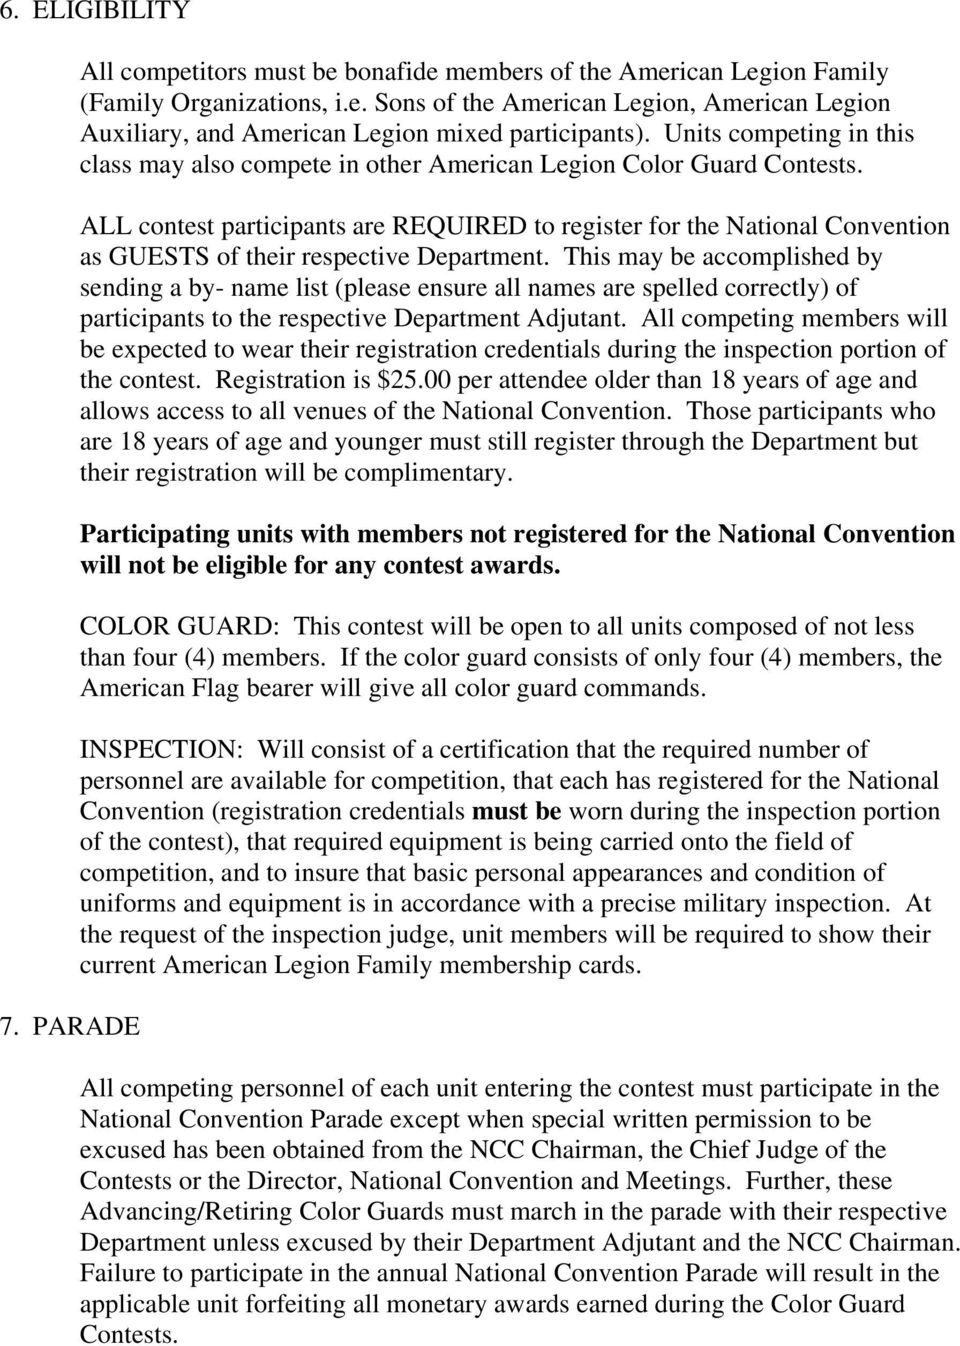 ALL contest participants are REQUIRED to register for the National Convention as GUESTS of their respective Department.